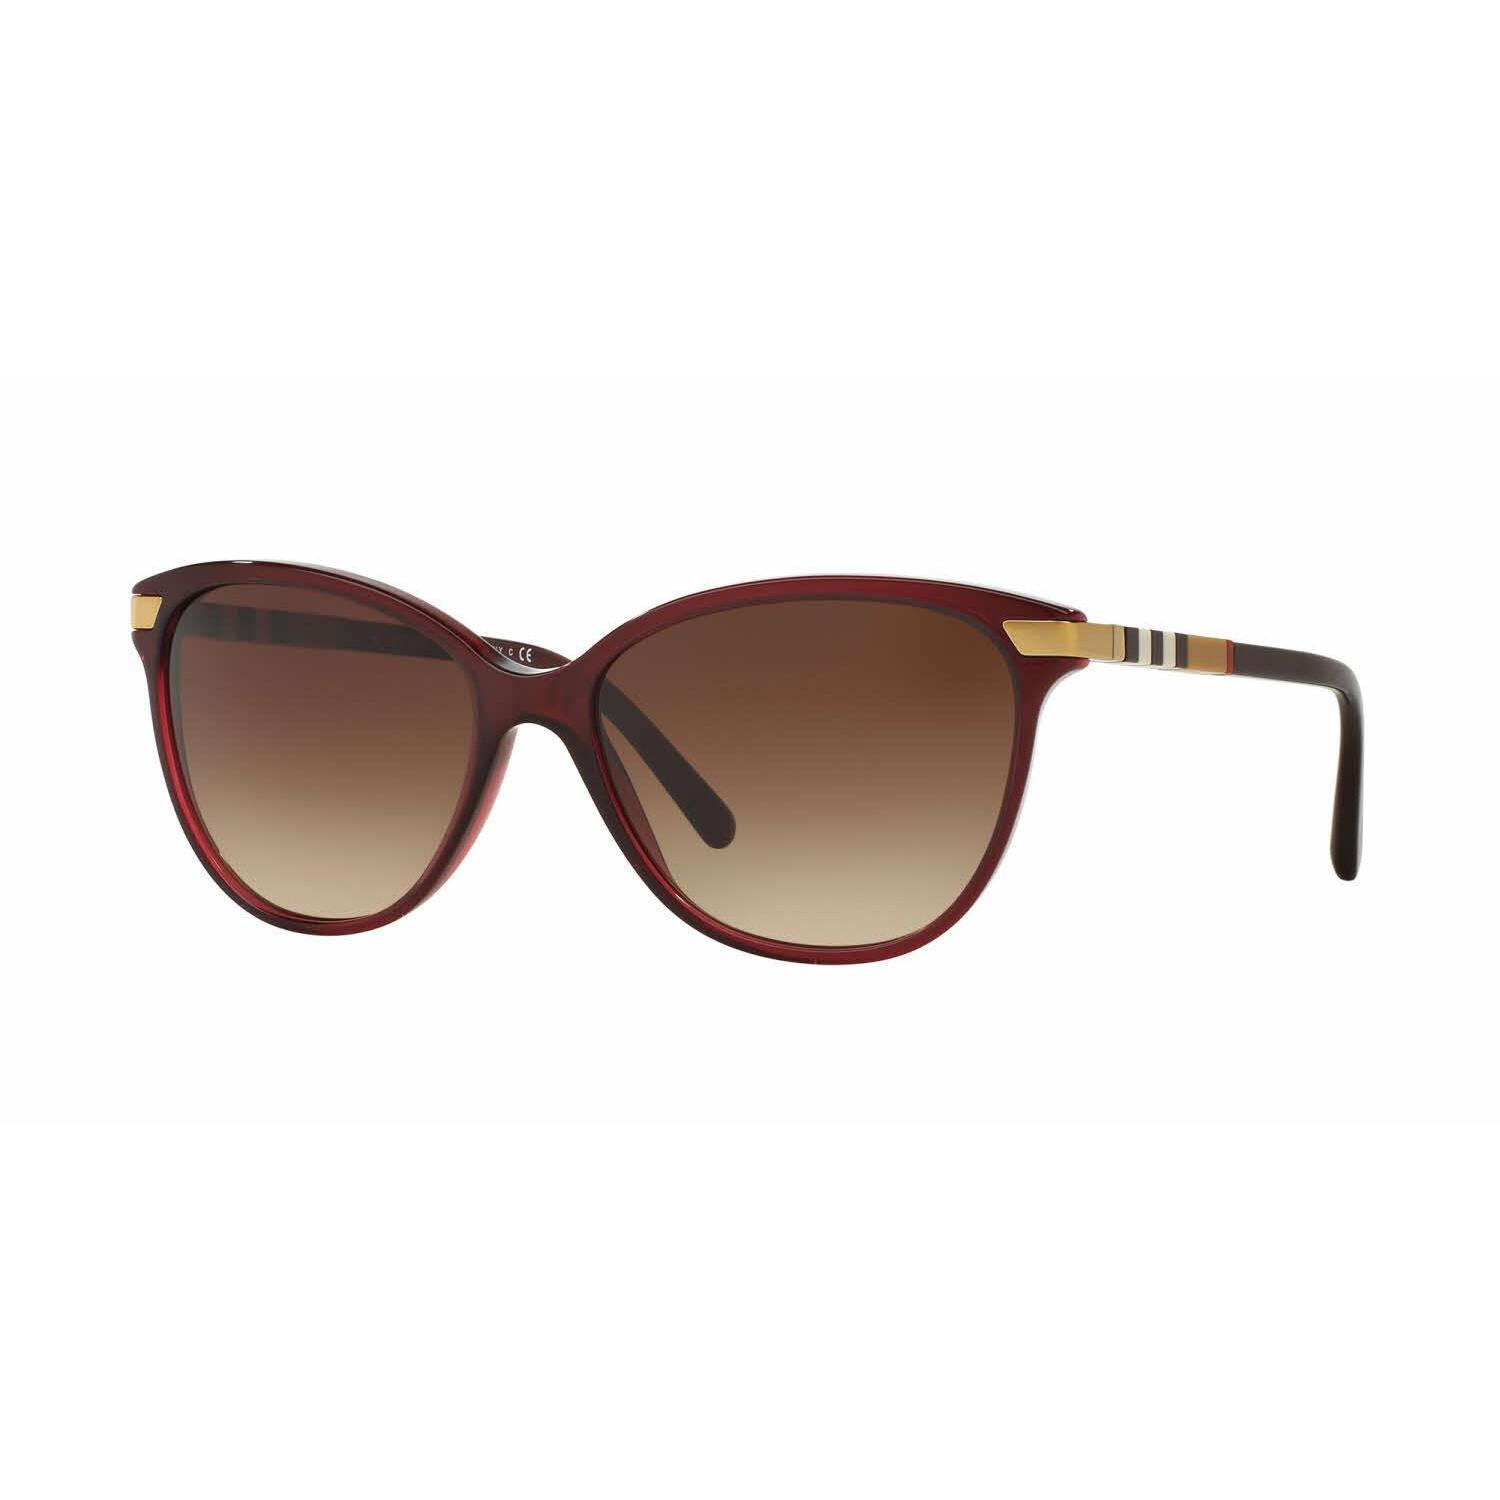 2986bc5b3946 Shop Burberry Women BE4216 301413 Bordeaux Plastic Cat Eye Sunglasses -  Free Shipping Today - Overstock - 13322736